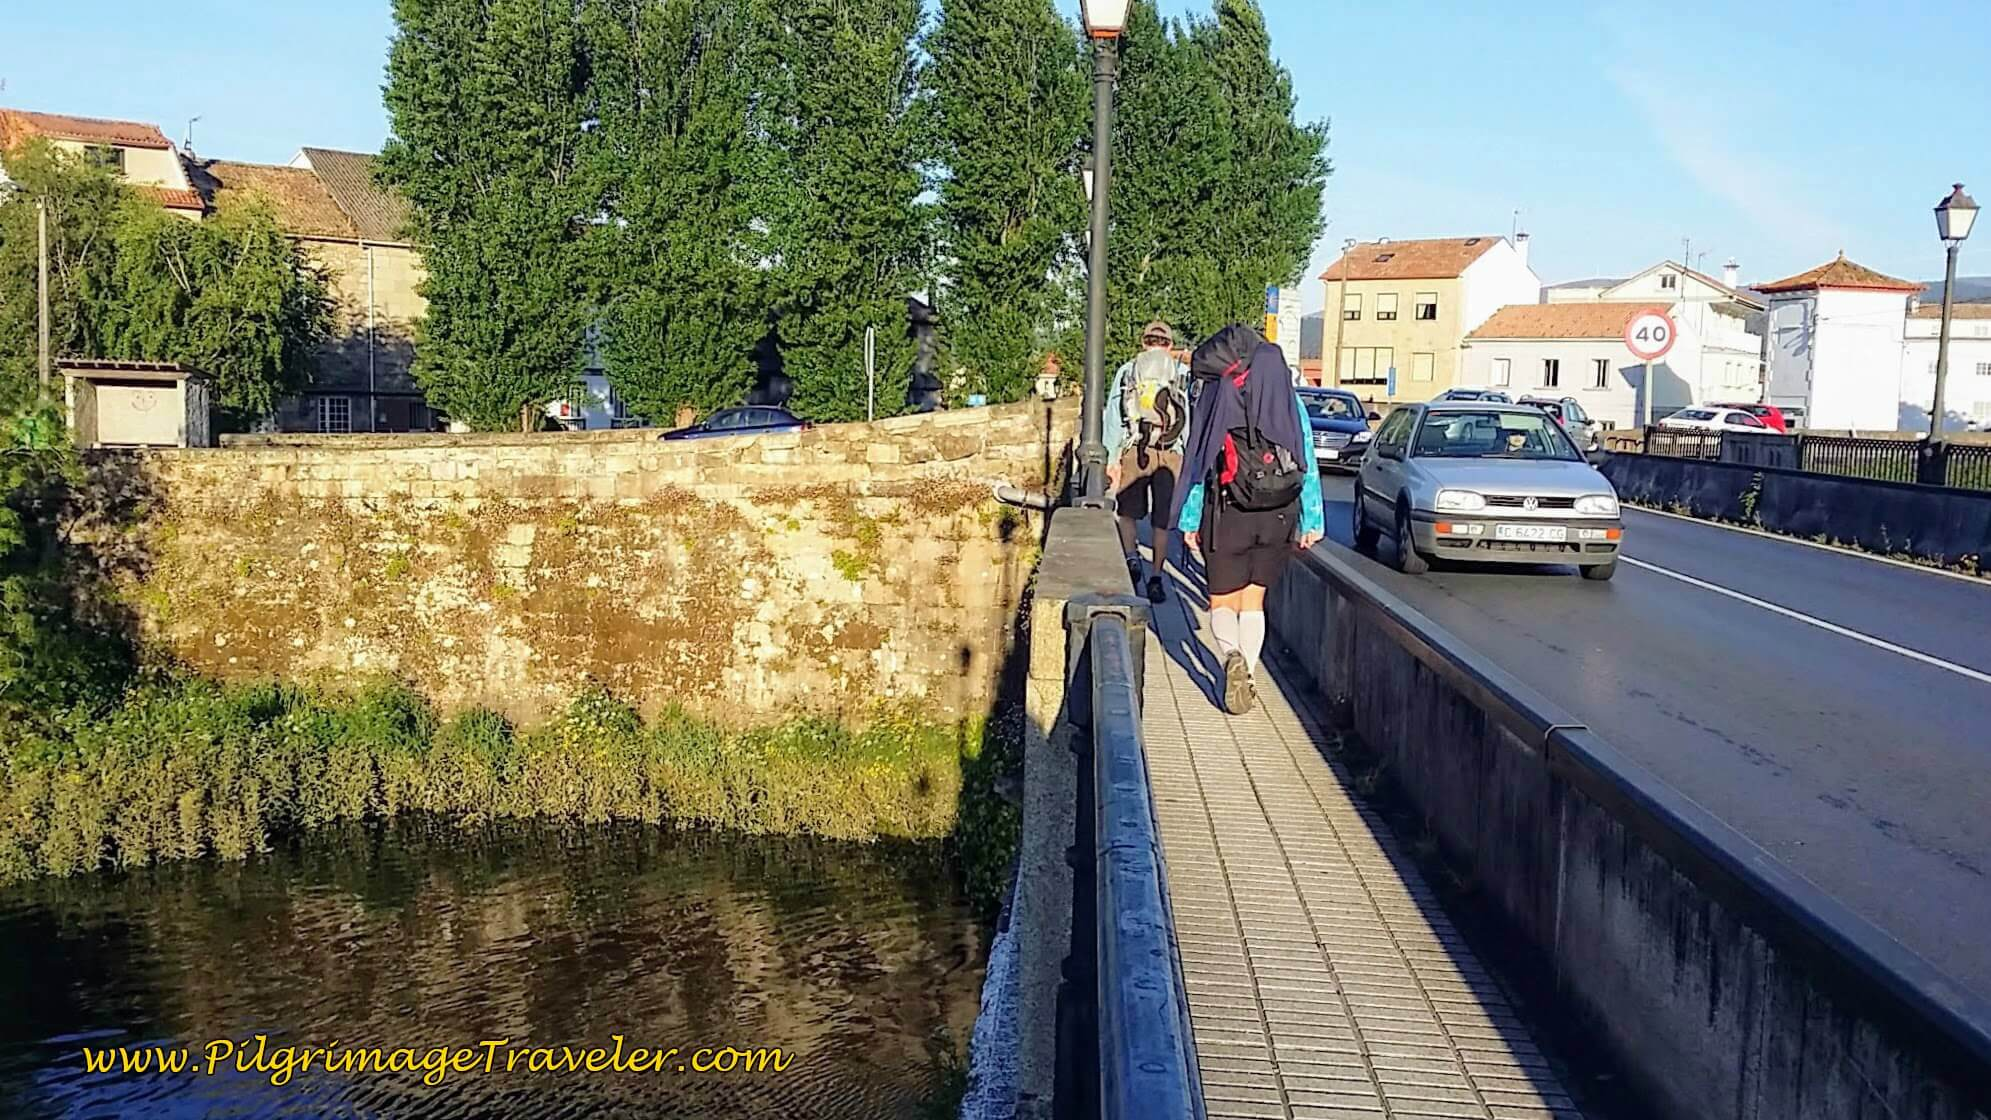 Cross the Río Ulla and Walk into Padrón on Day Twenty-Four, Portuguese Way